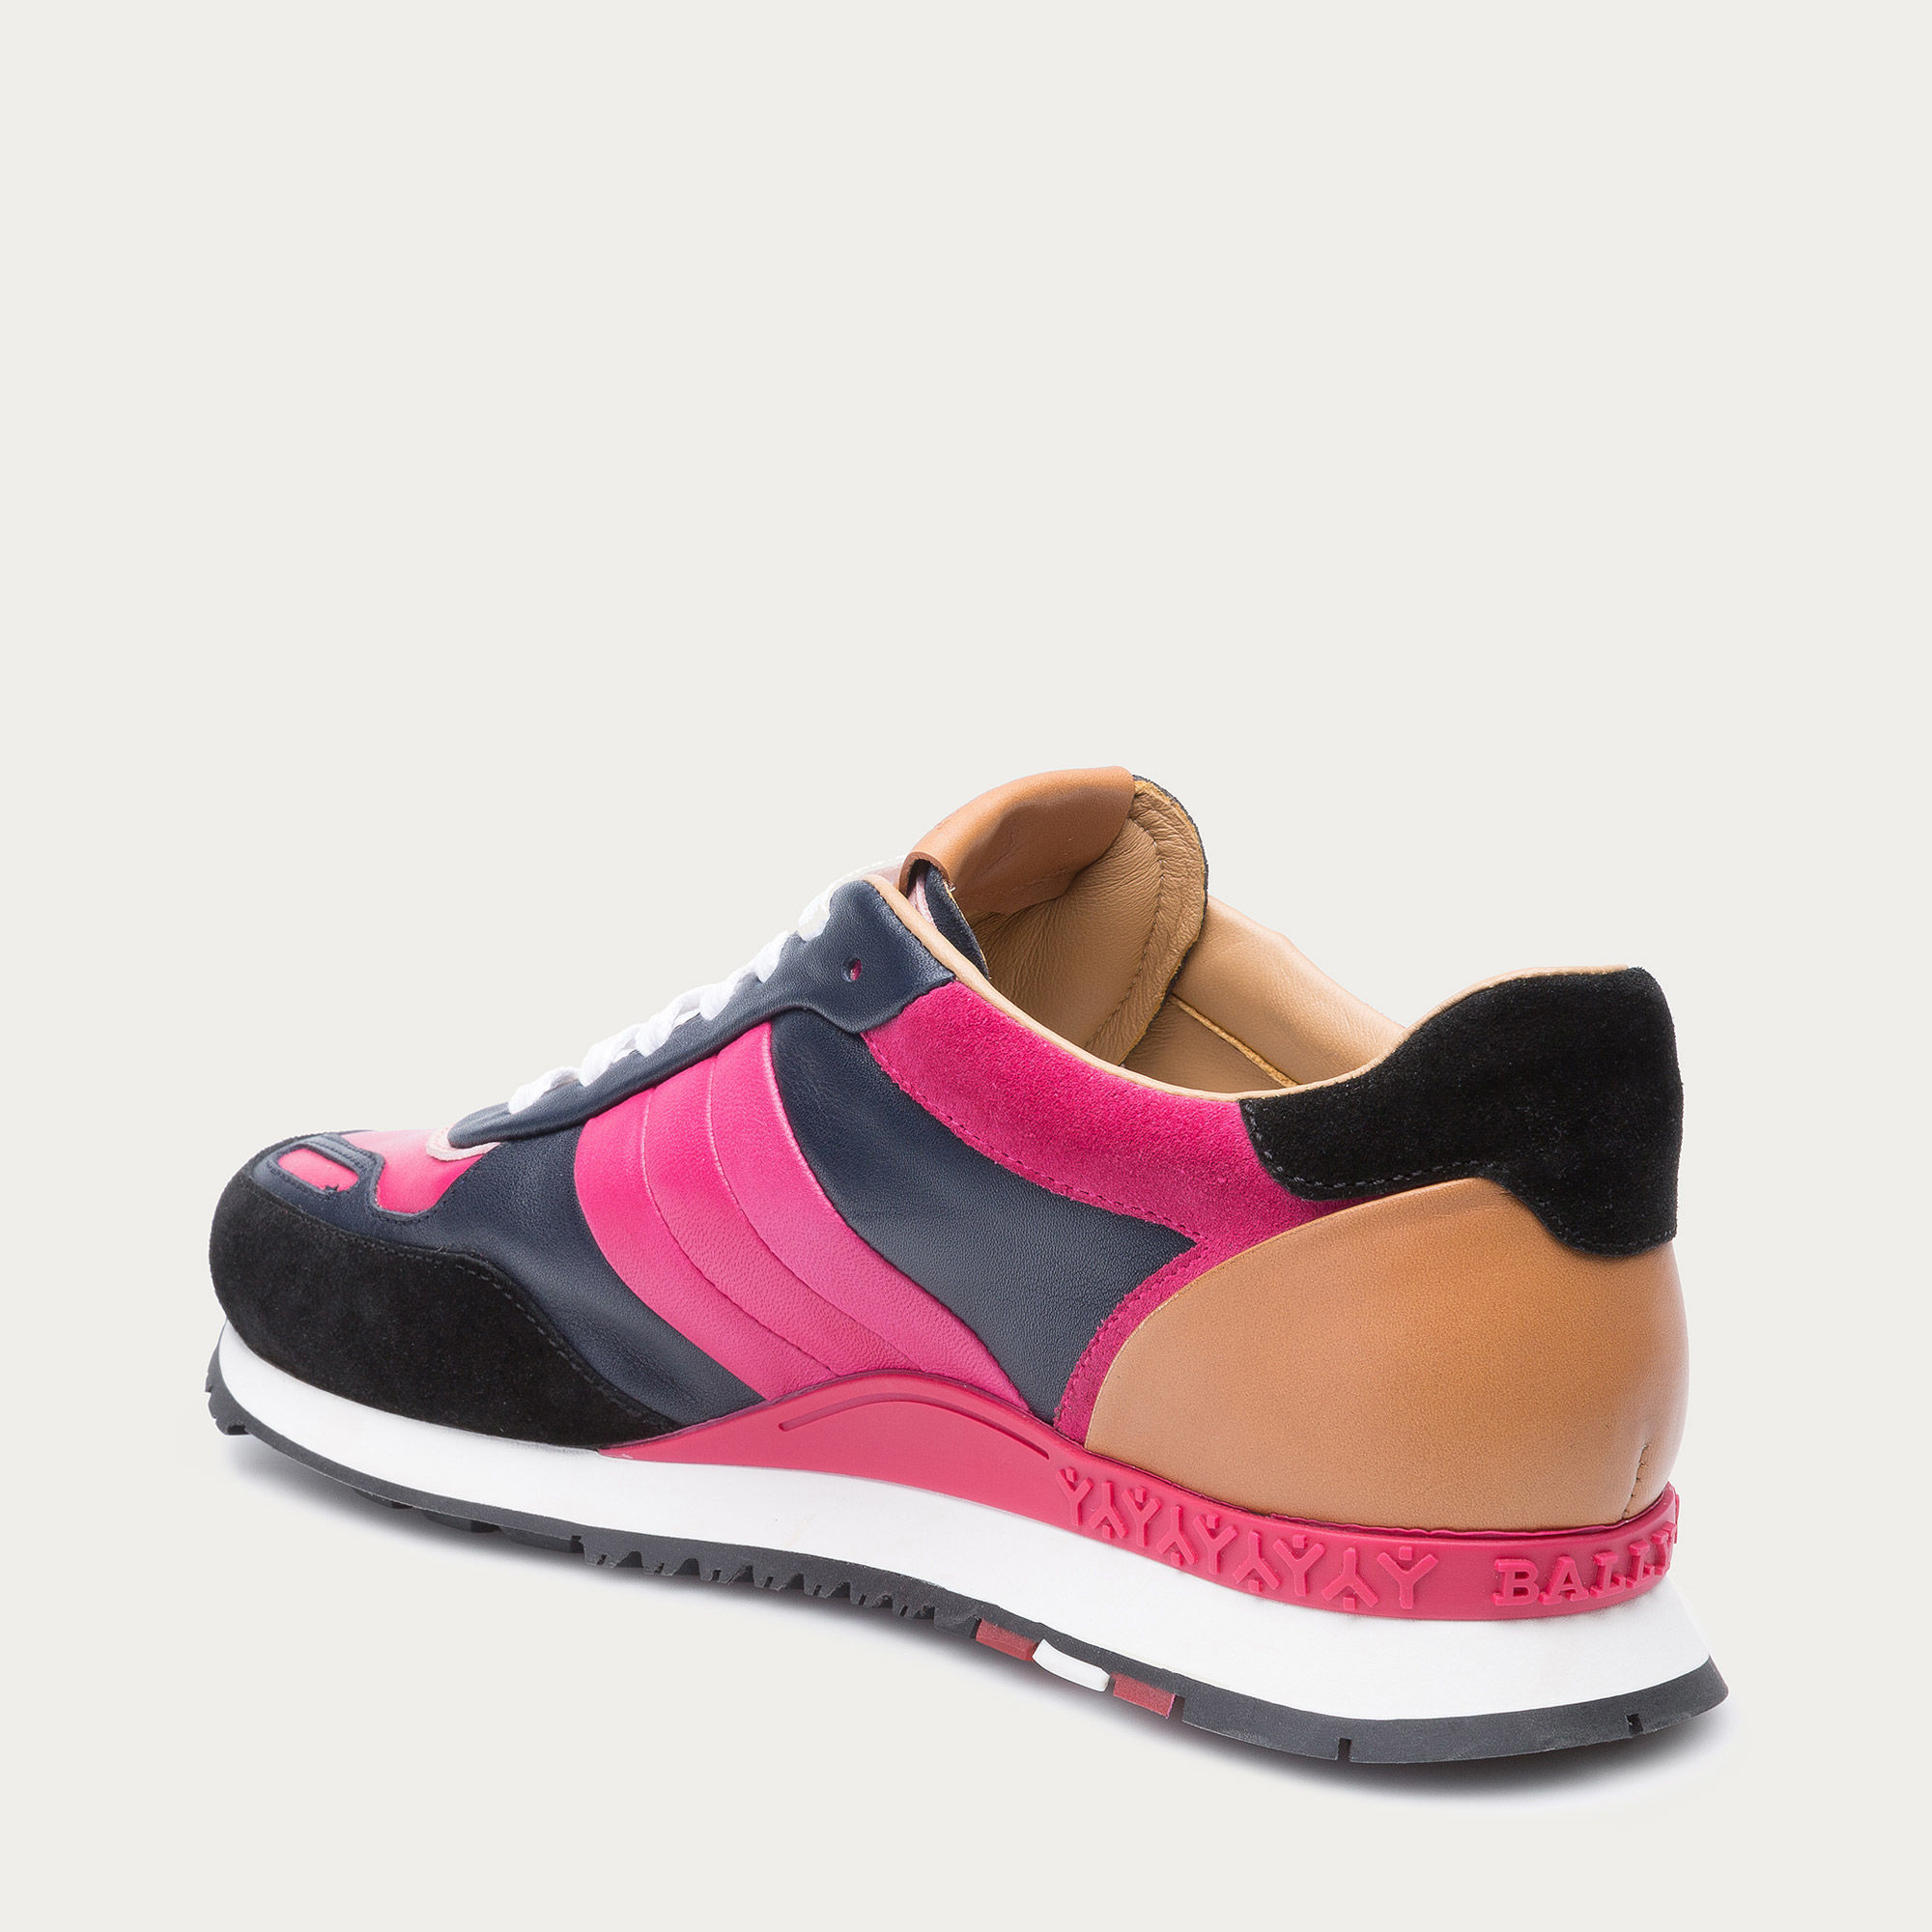 Bally Asyia in Pink - Lyst